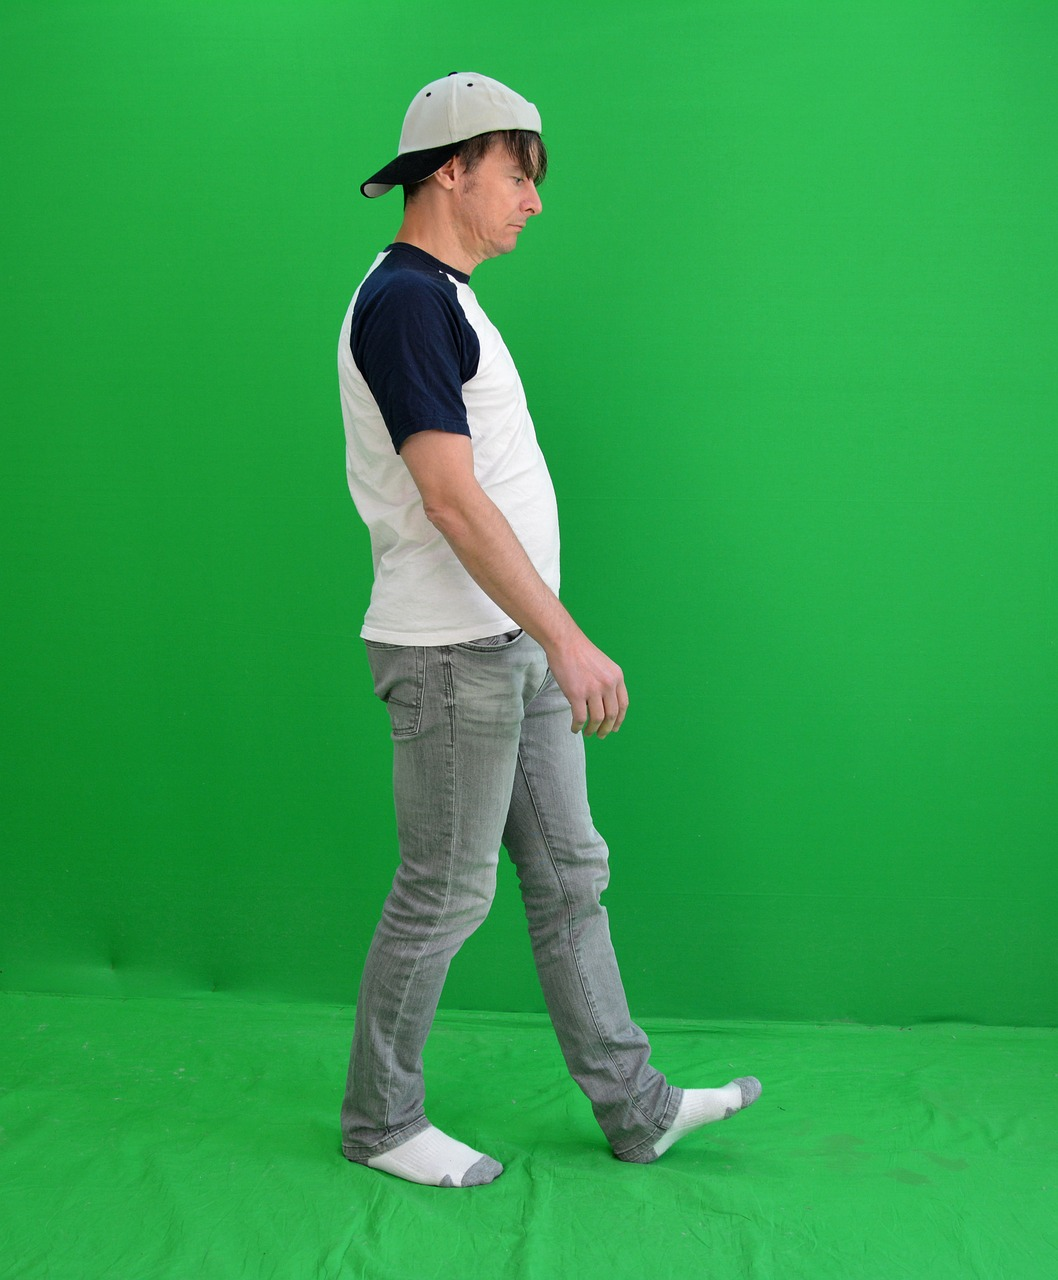 chroma key person human free photo